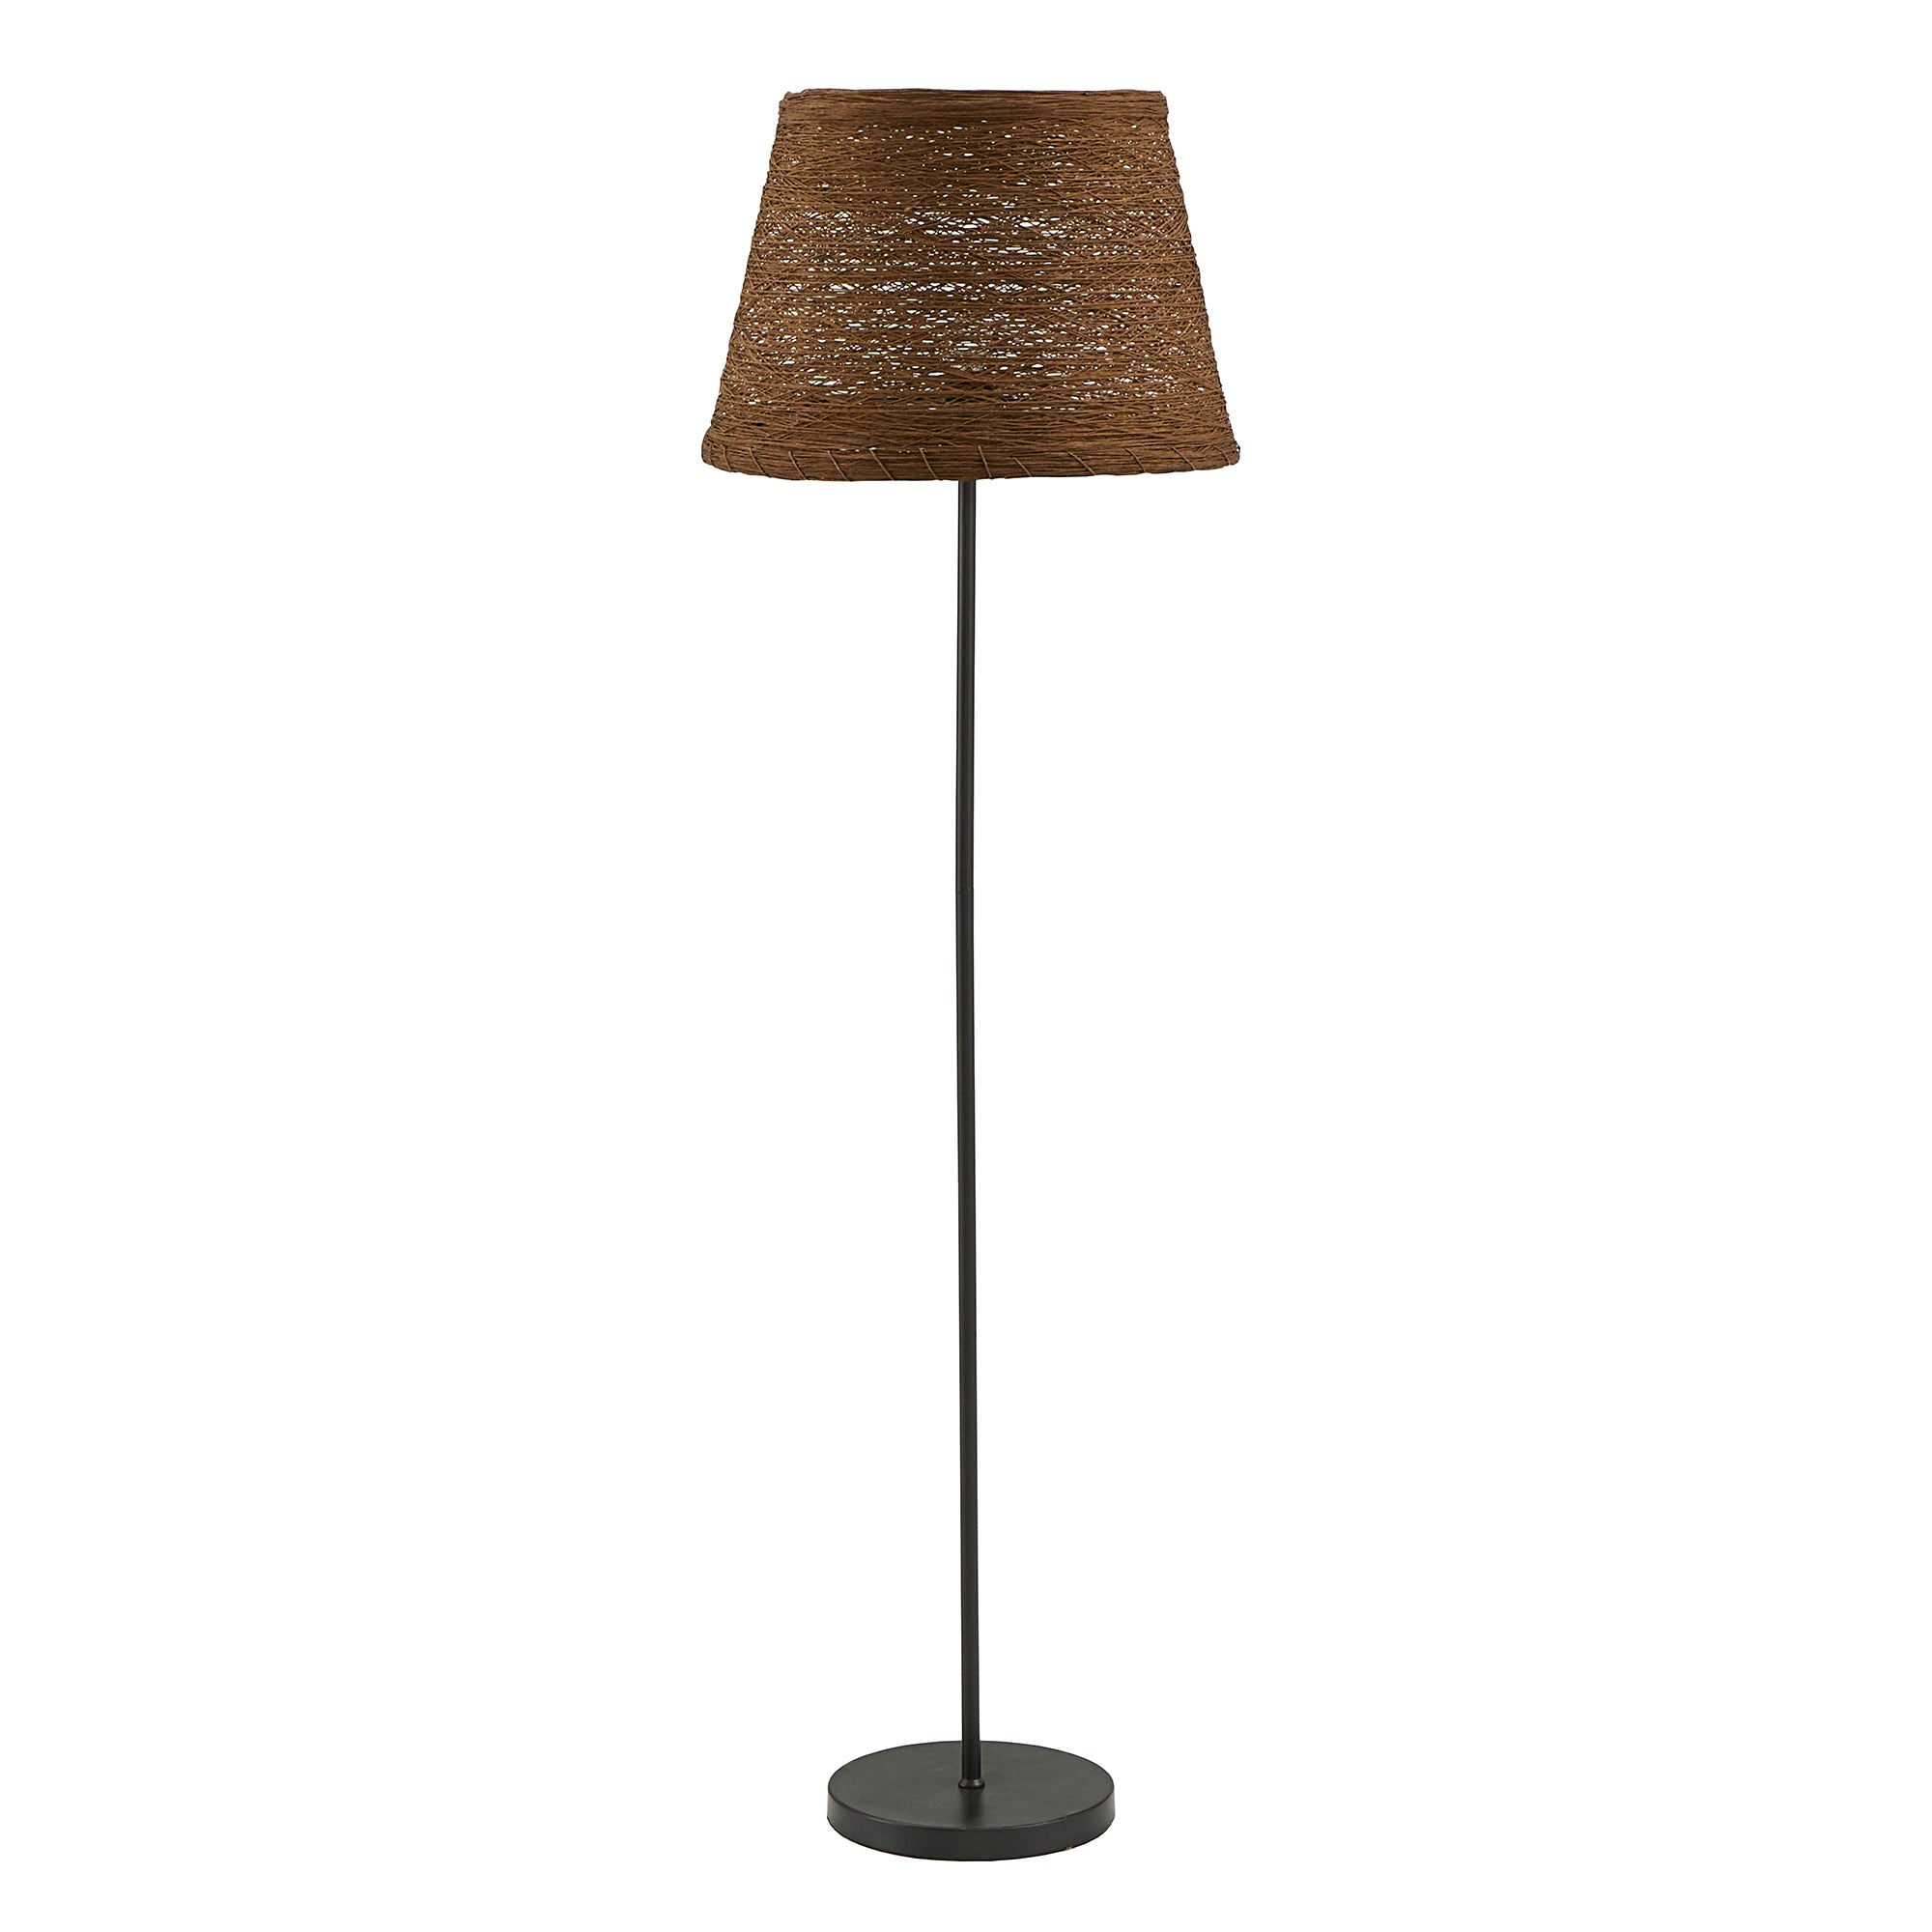 Matte Black Finish Brown Rattan Lampshade Floor Lamp